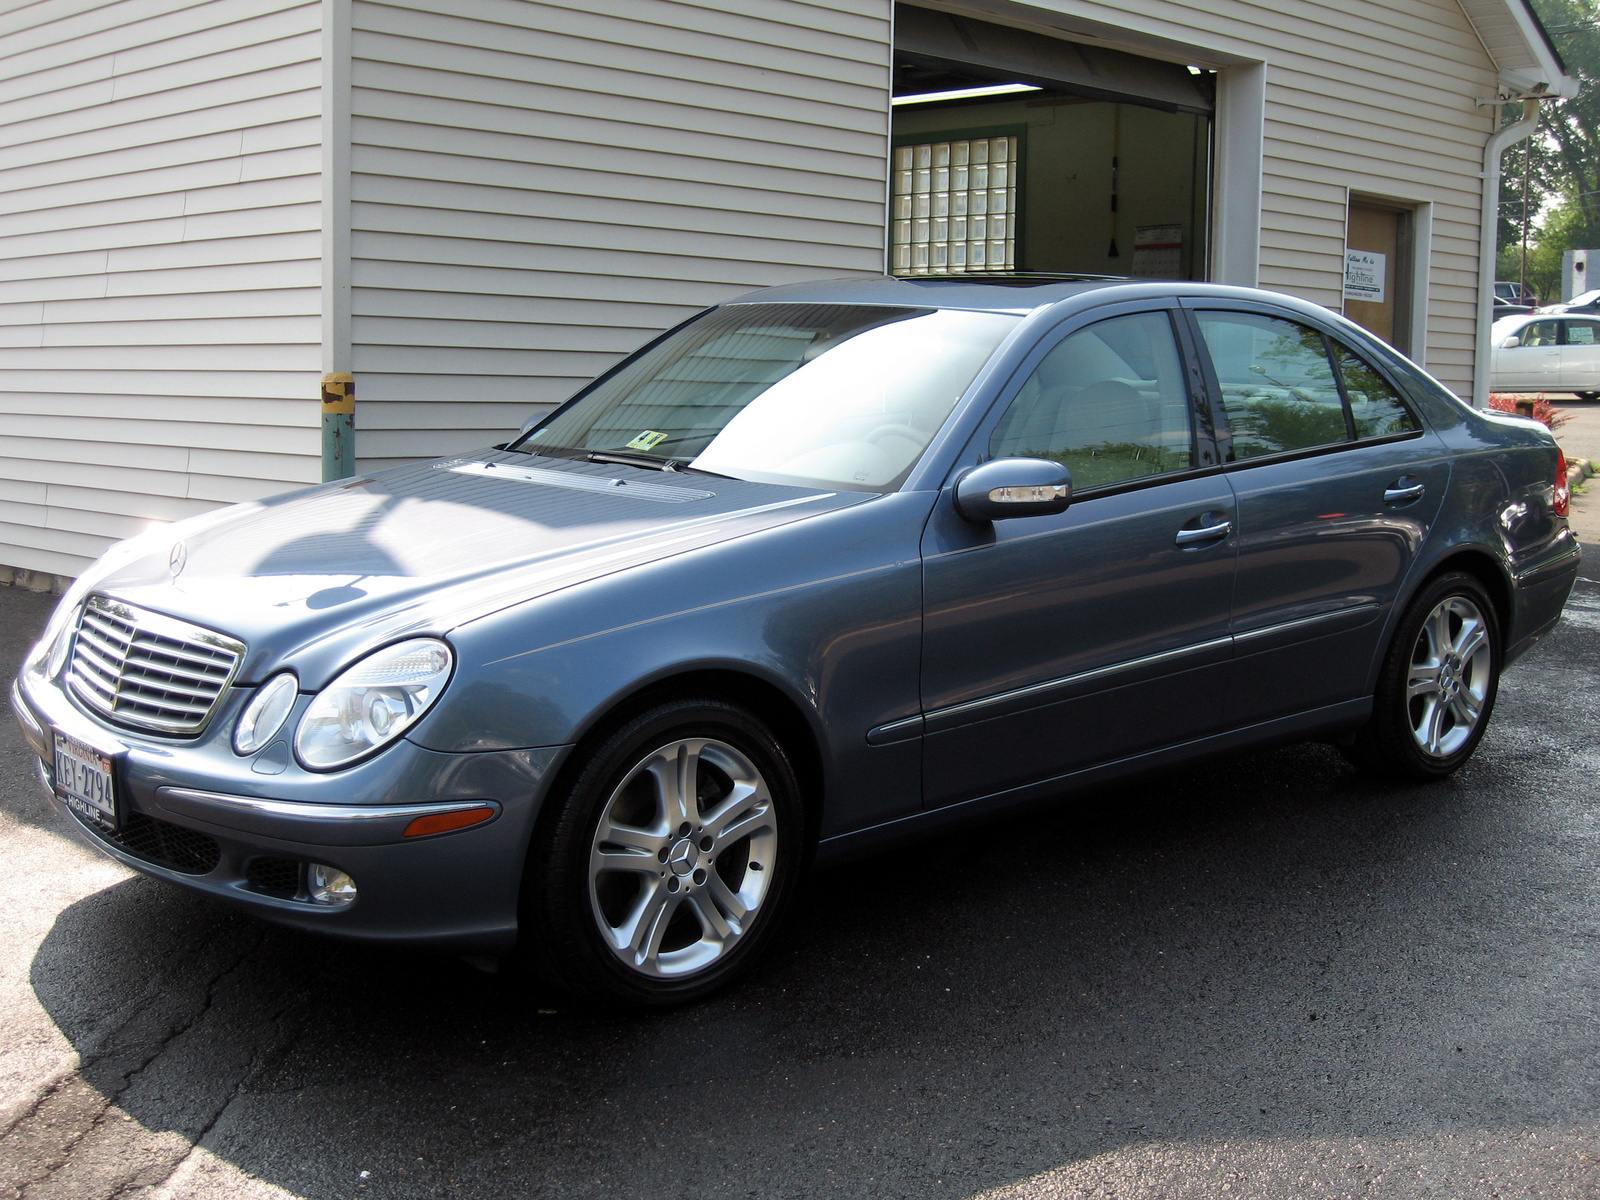 2004 Mercedes-Benz E500 Sedan picture